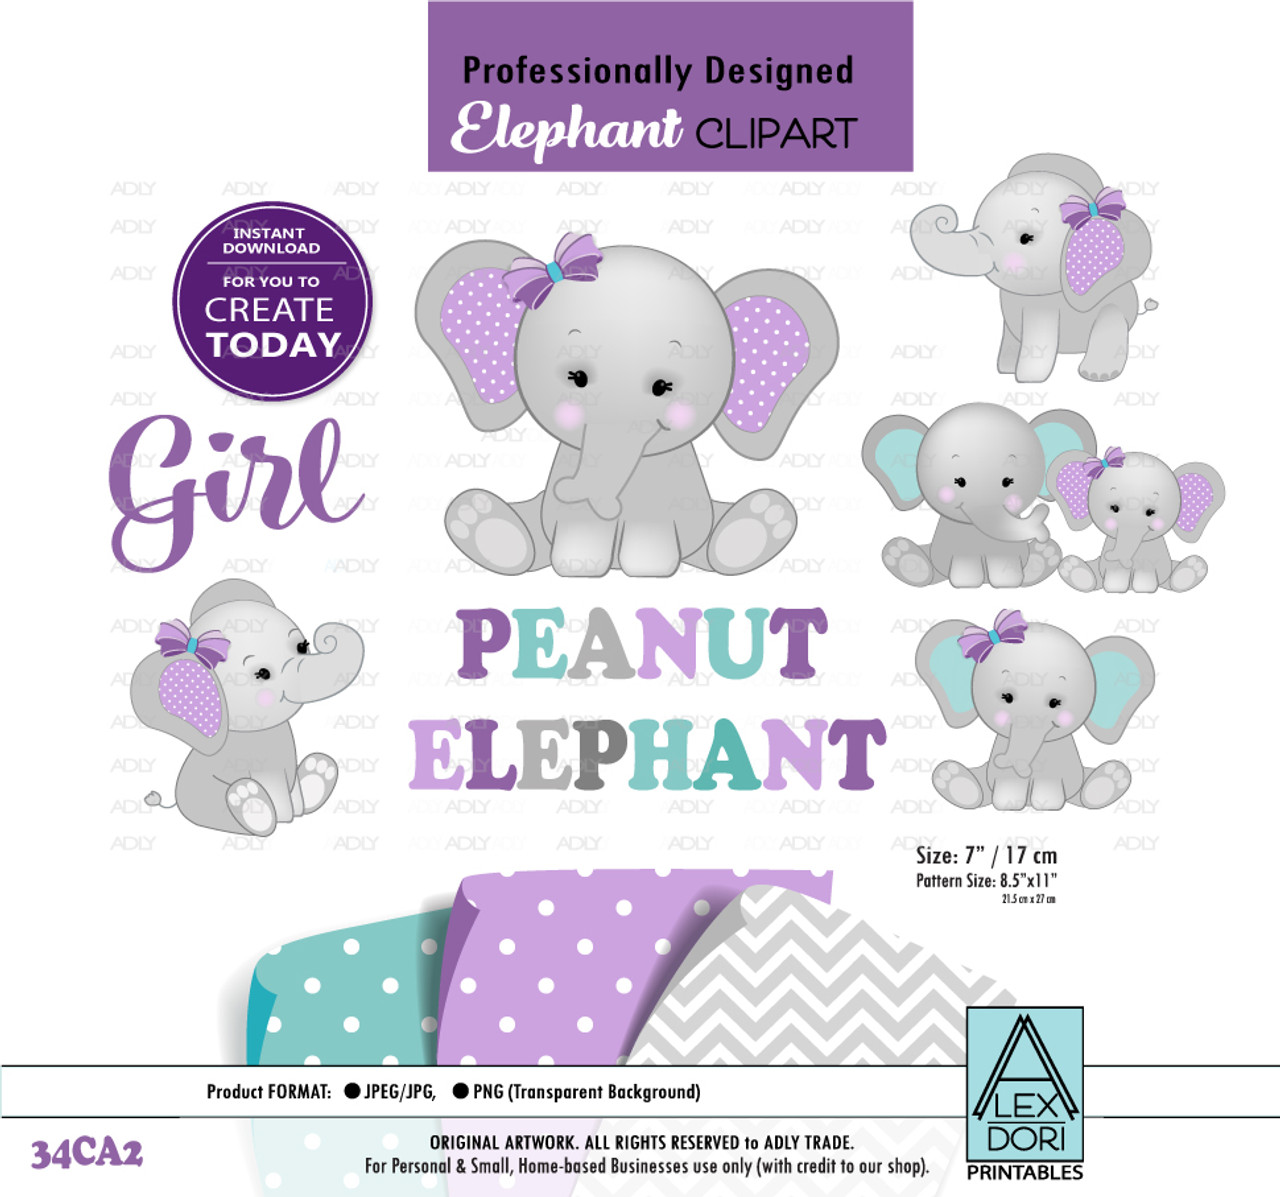 hight resolution of peanut elephant mommy and baby digital clipart baby elephant girl clipart purple gray teal turquoise clipart png jpeg adly invitations and digital party